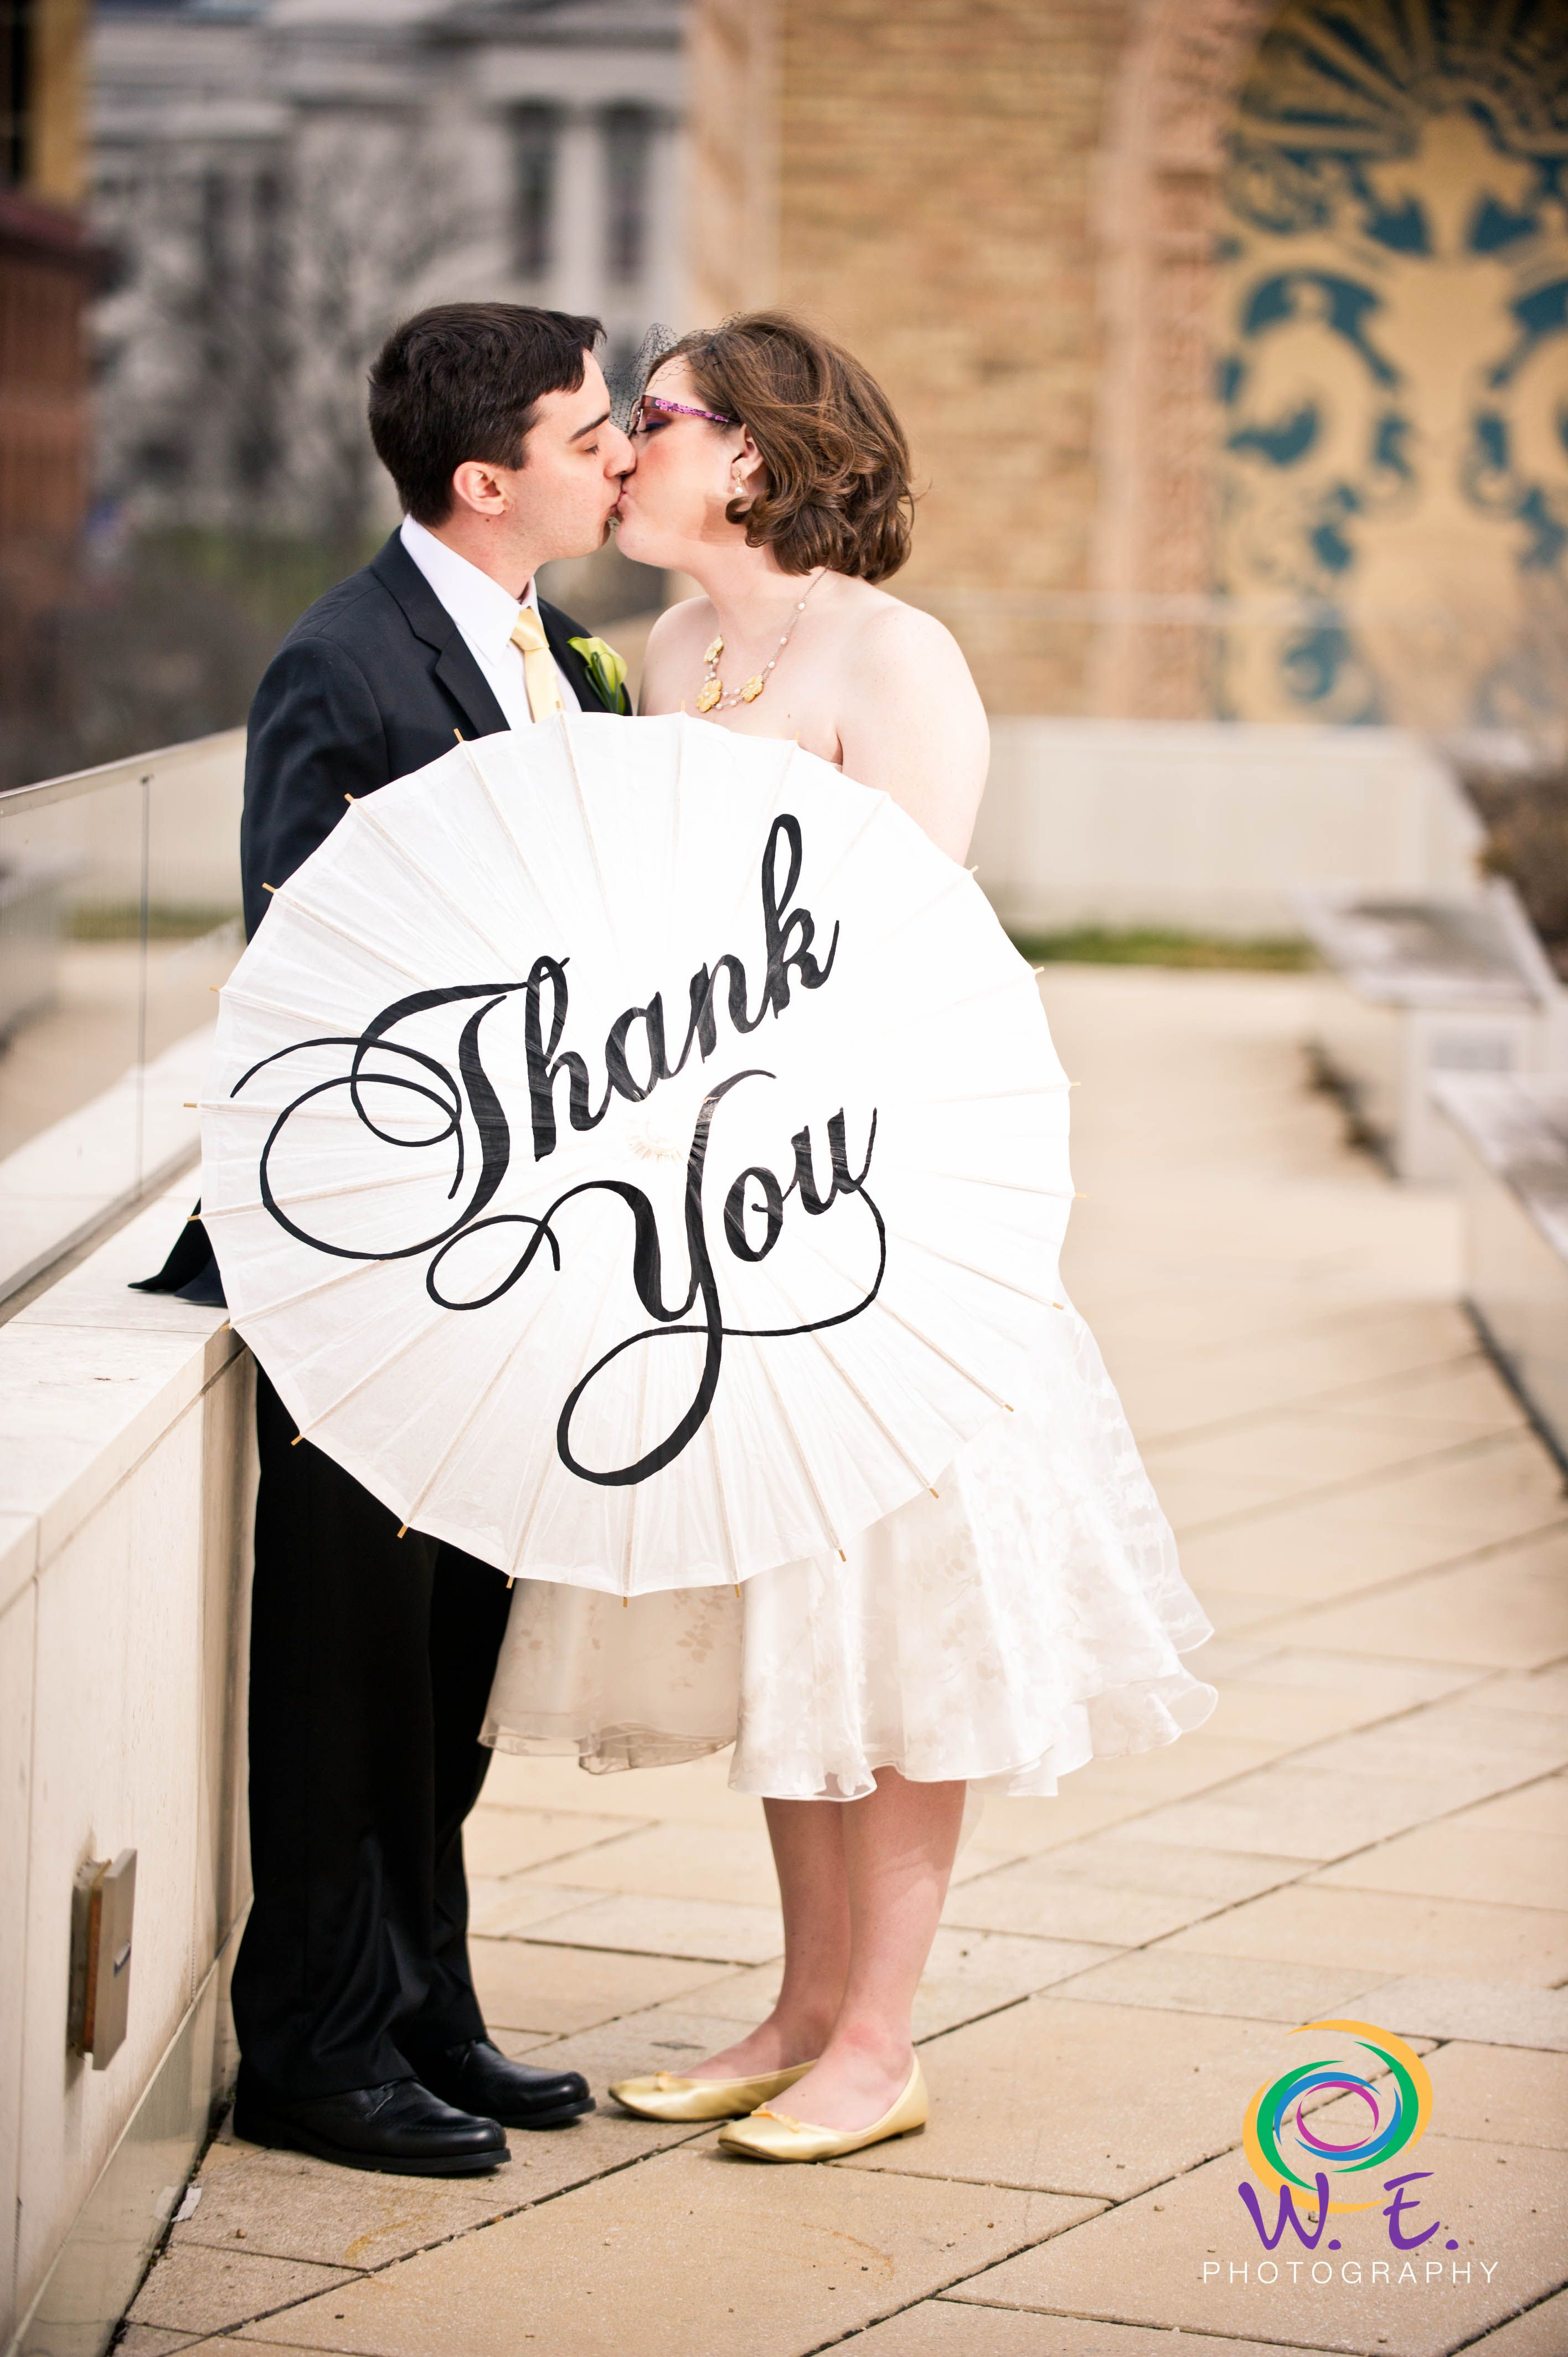 wedding custom thank you cards%0A Thankyou card pictures for your wedding   wisconsin wedding  The Madison  Museum